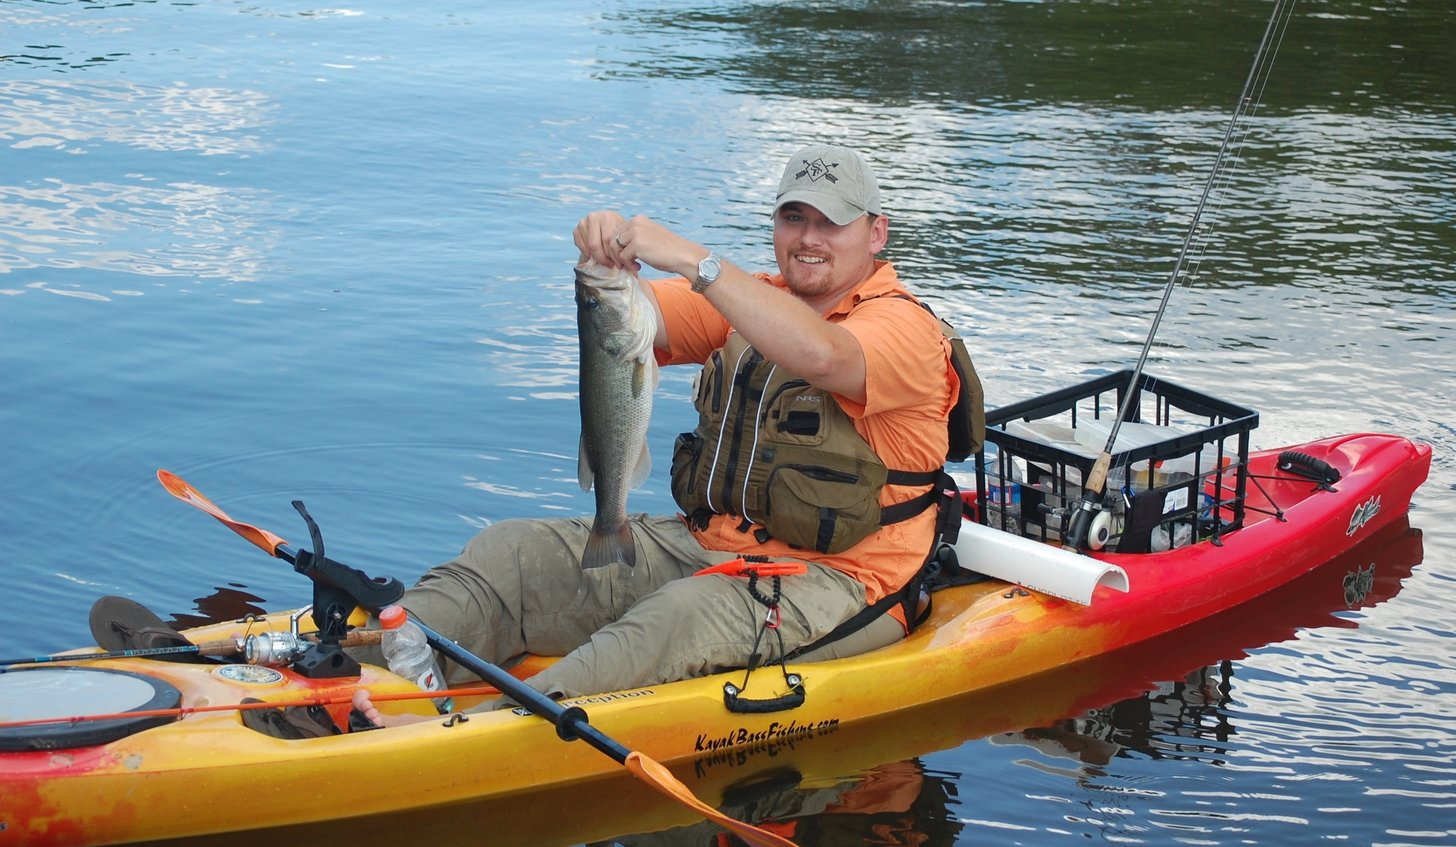 Kayak fishing 7 tips to become a better kayak angler for Best canoe for fishing